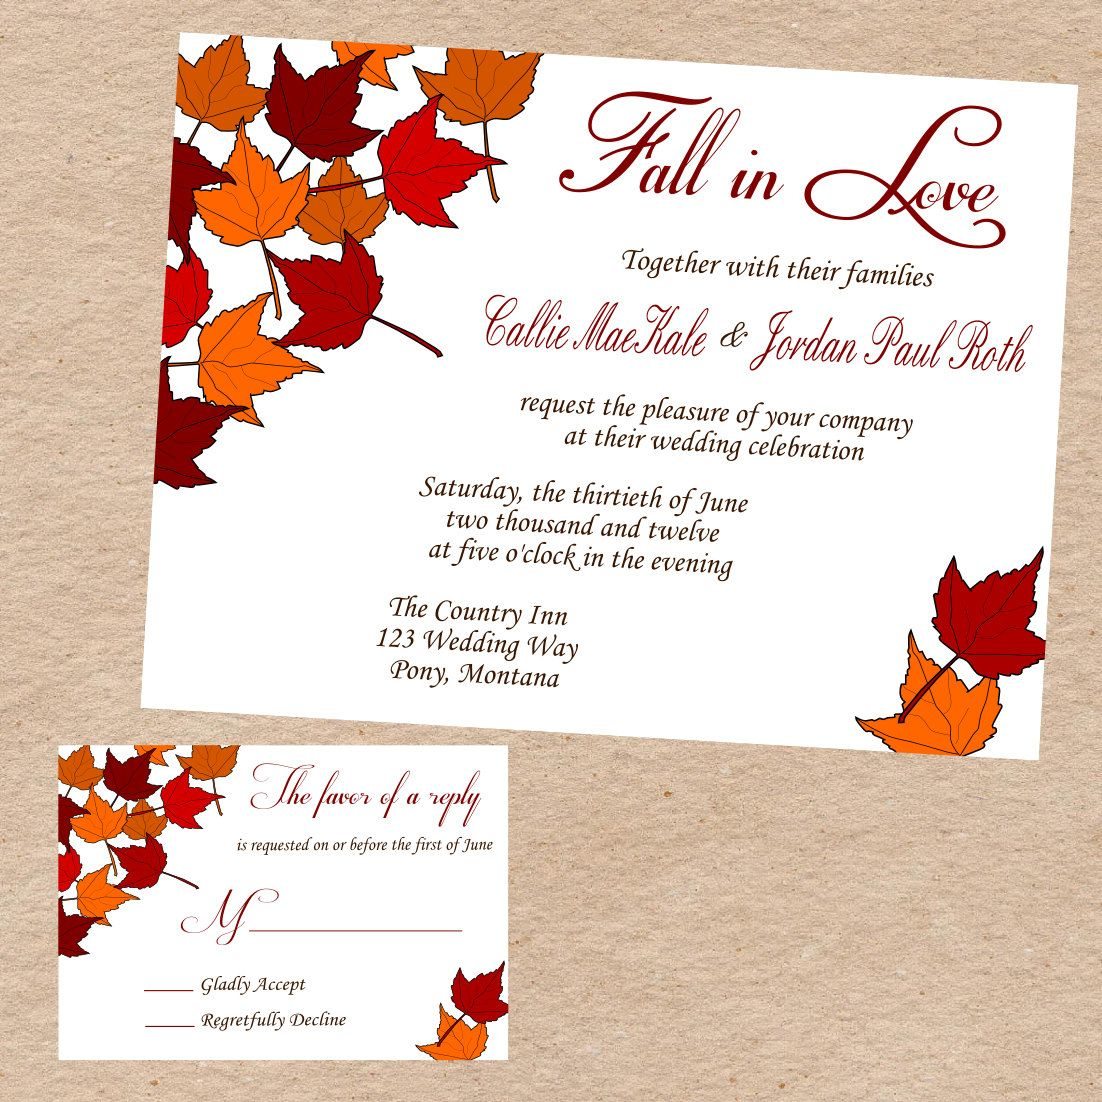 Fall Wedding Invitations and Inspiration | 21st - Bridal World ...